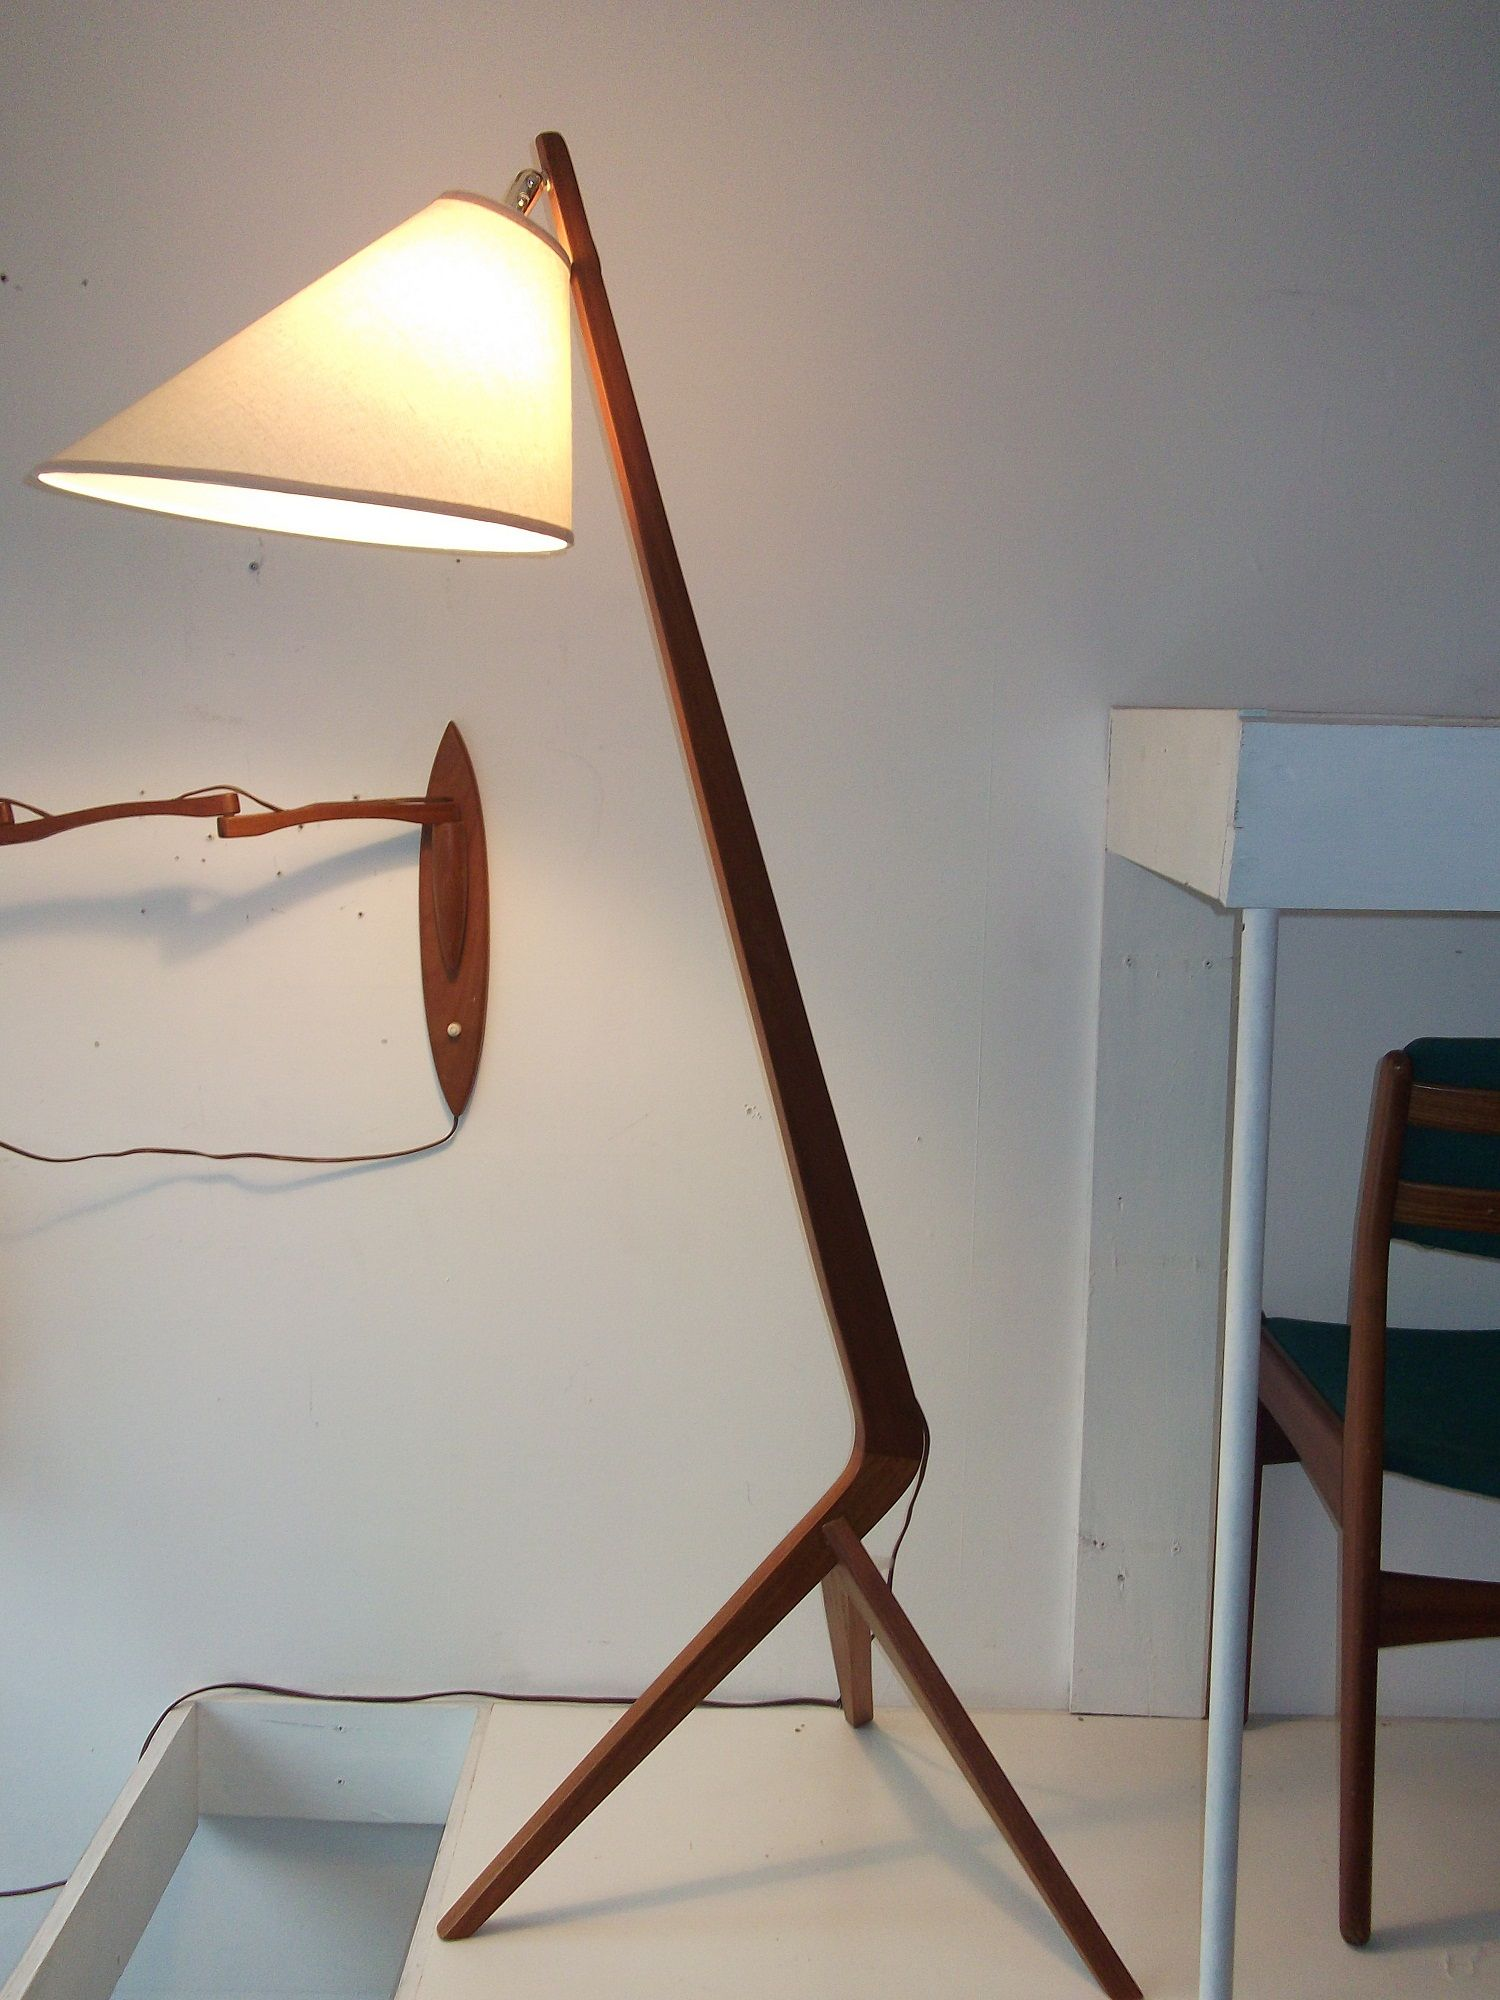 Extraordinary Mid Century Modern Teak Legged Floor Lamp Incredible Design Images